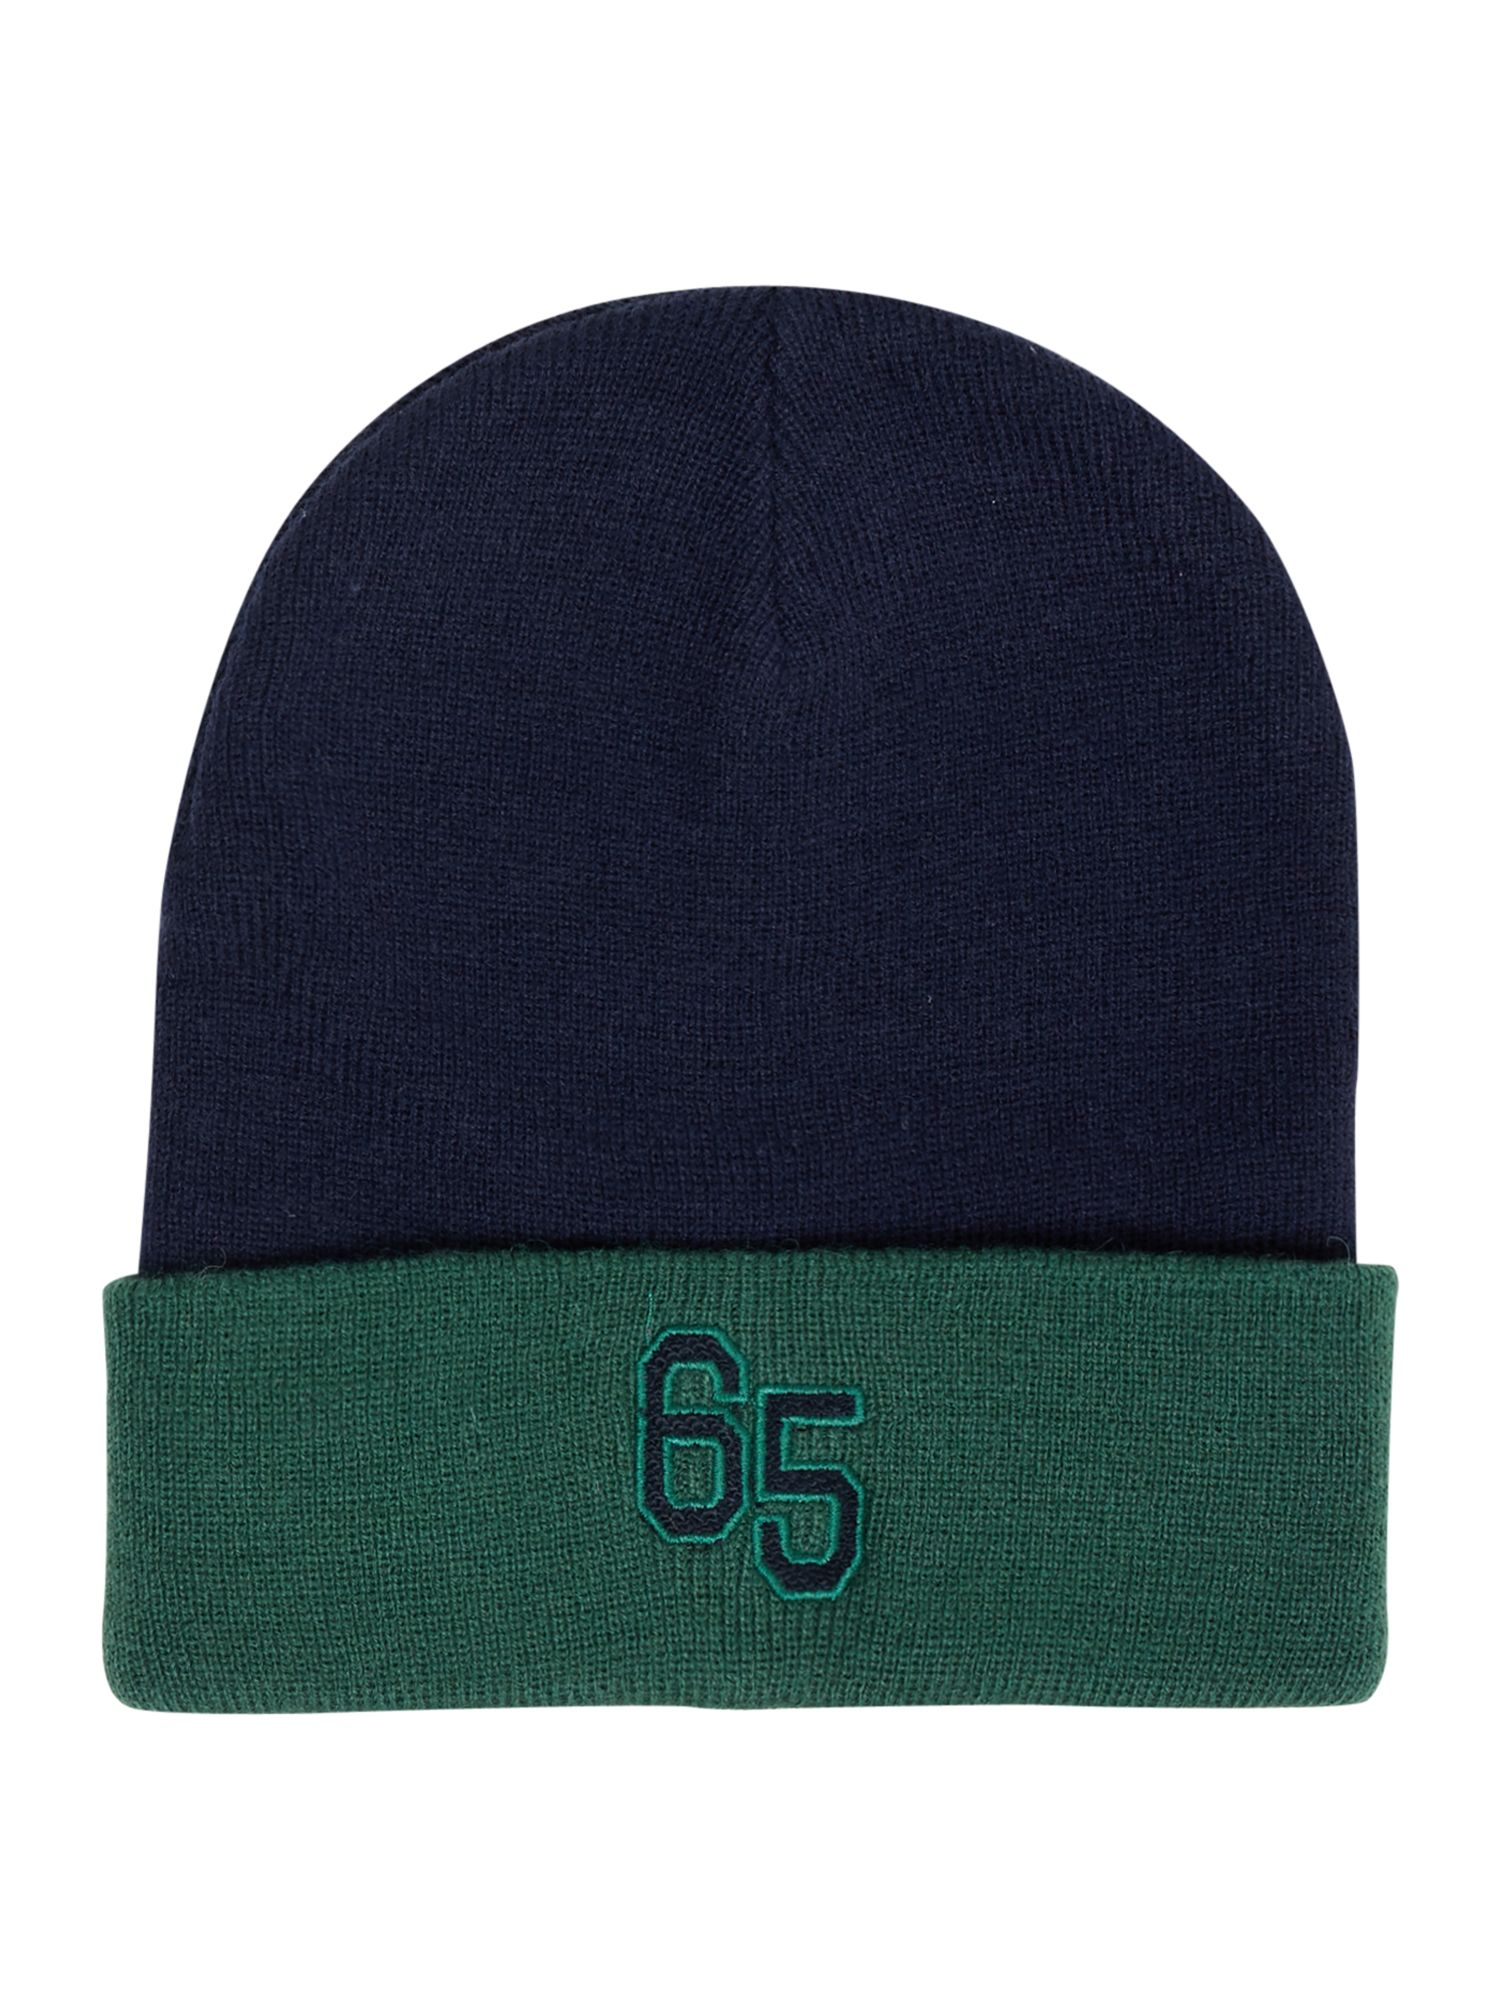 Benetton Benetton Boy`s Contrast Colour Hat With Logo, Navy